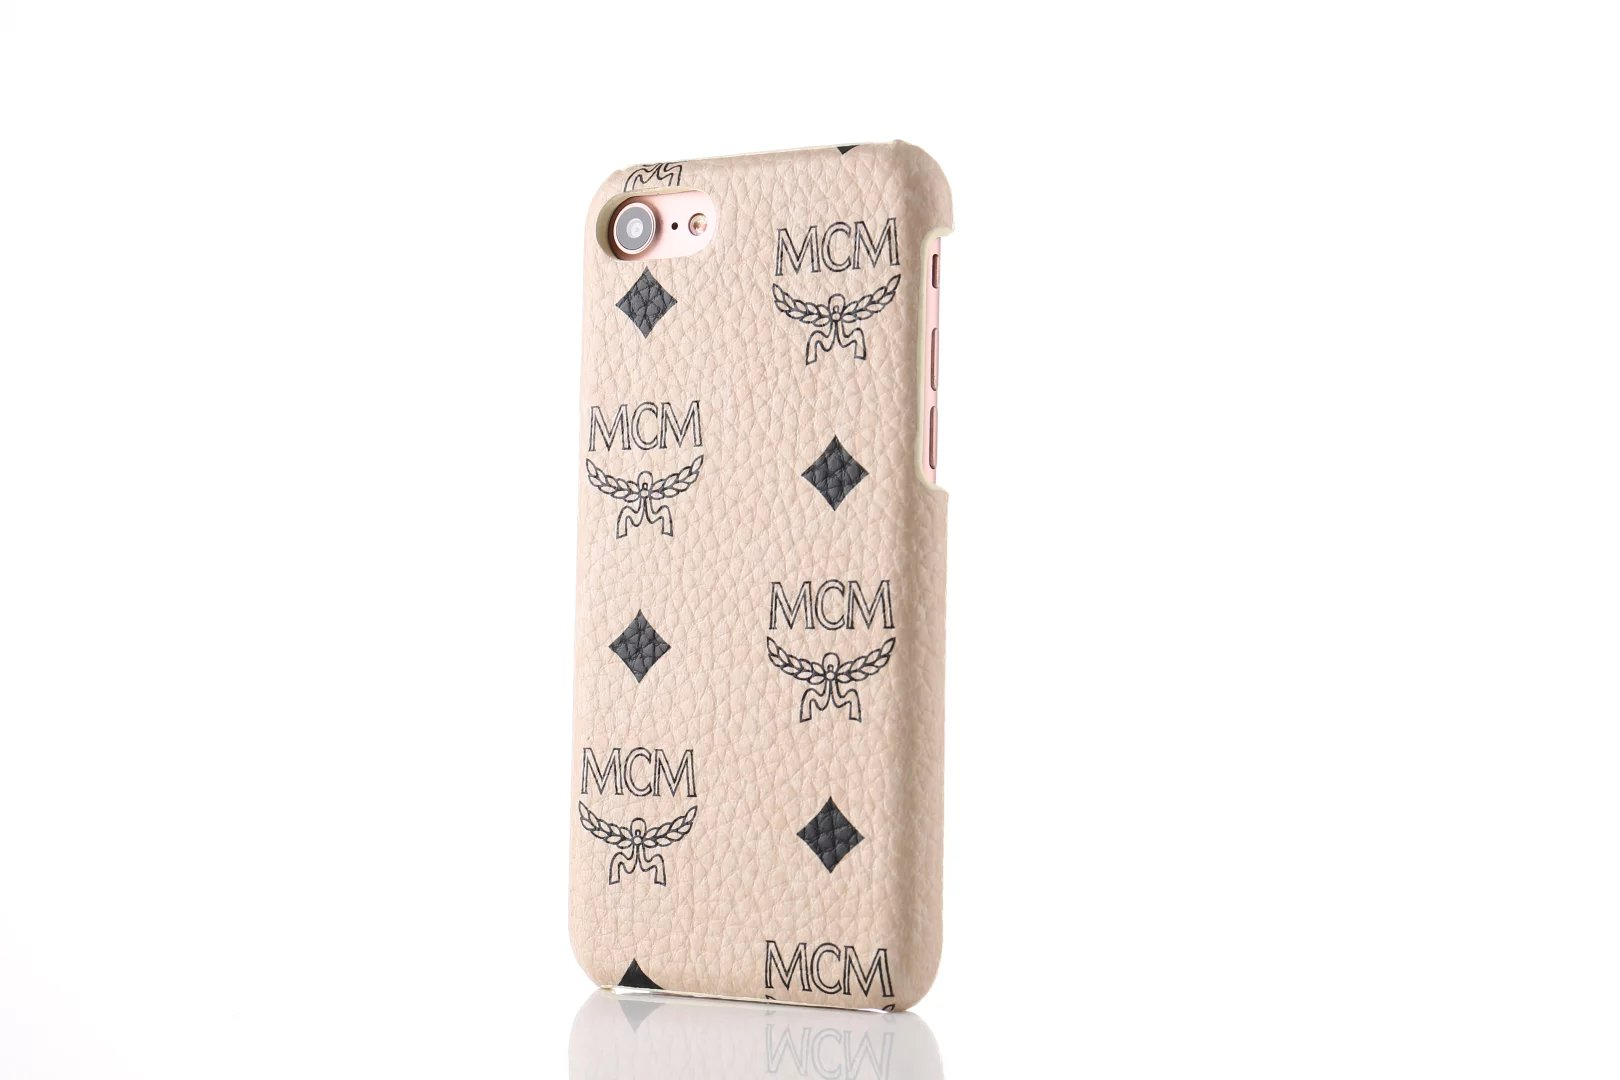 iphone 6 designer cases uk good cases for iphone 6 fashion iphone6 case 6 cases the upcoming iphone designer iphone 6 wallet case iphone custom covers iphone case and screen protector iphone new launch